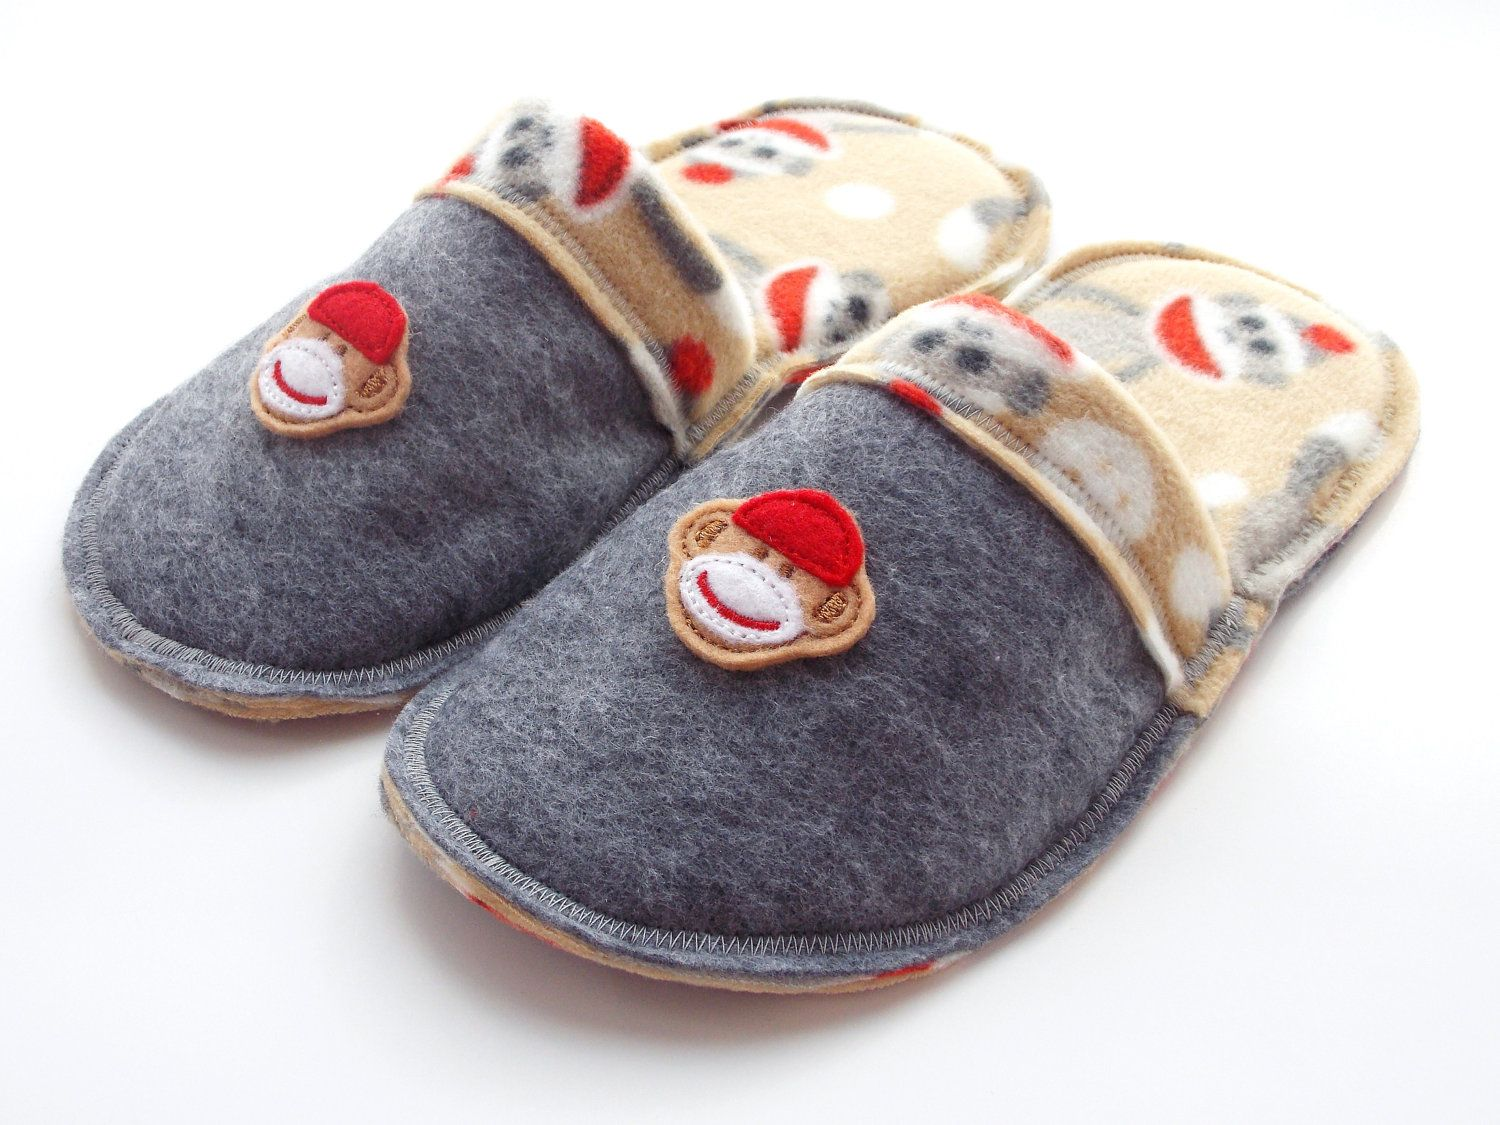 Teen Sock Monkey Slippers Childrens Clothing House shoes scuffs ...